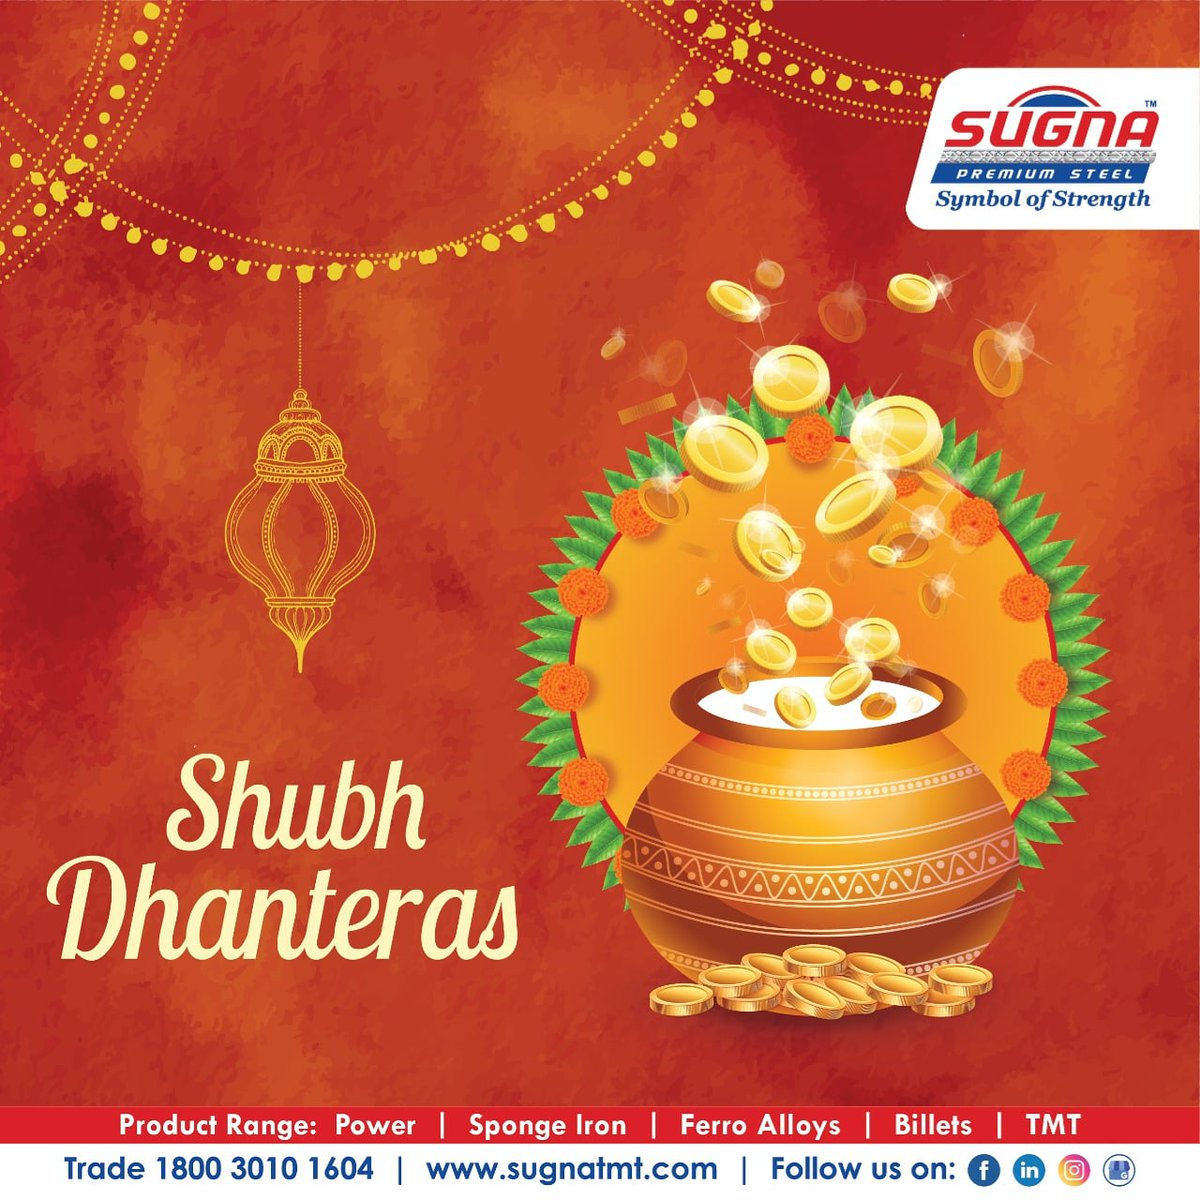 Happy Dhanteras to all from sugna metals.  #Sugunatmt #happynavratri #Navratri  #sugnaturbofe550 #sugnafe500 #sugnametals #besttmtinhyderabad #tmtmanufacturer #Power #Spongeiron #Billets #TMT #ferroalloysplant https://t.co/EE8Ojw2ACI